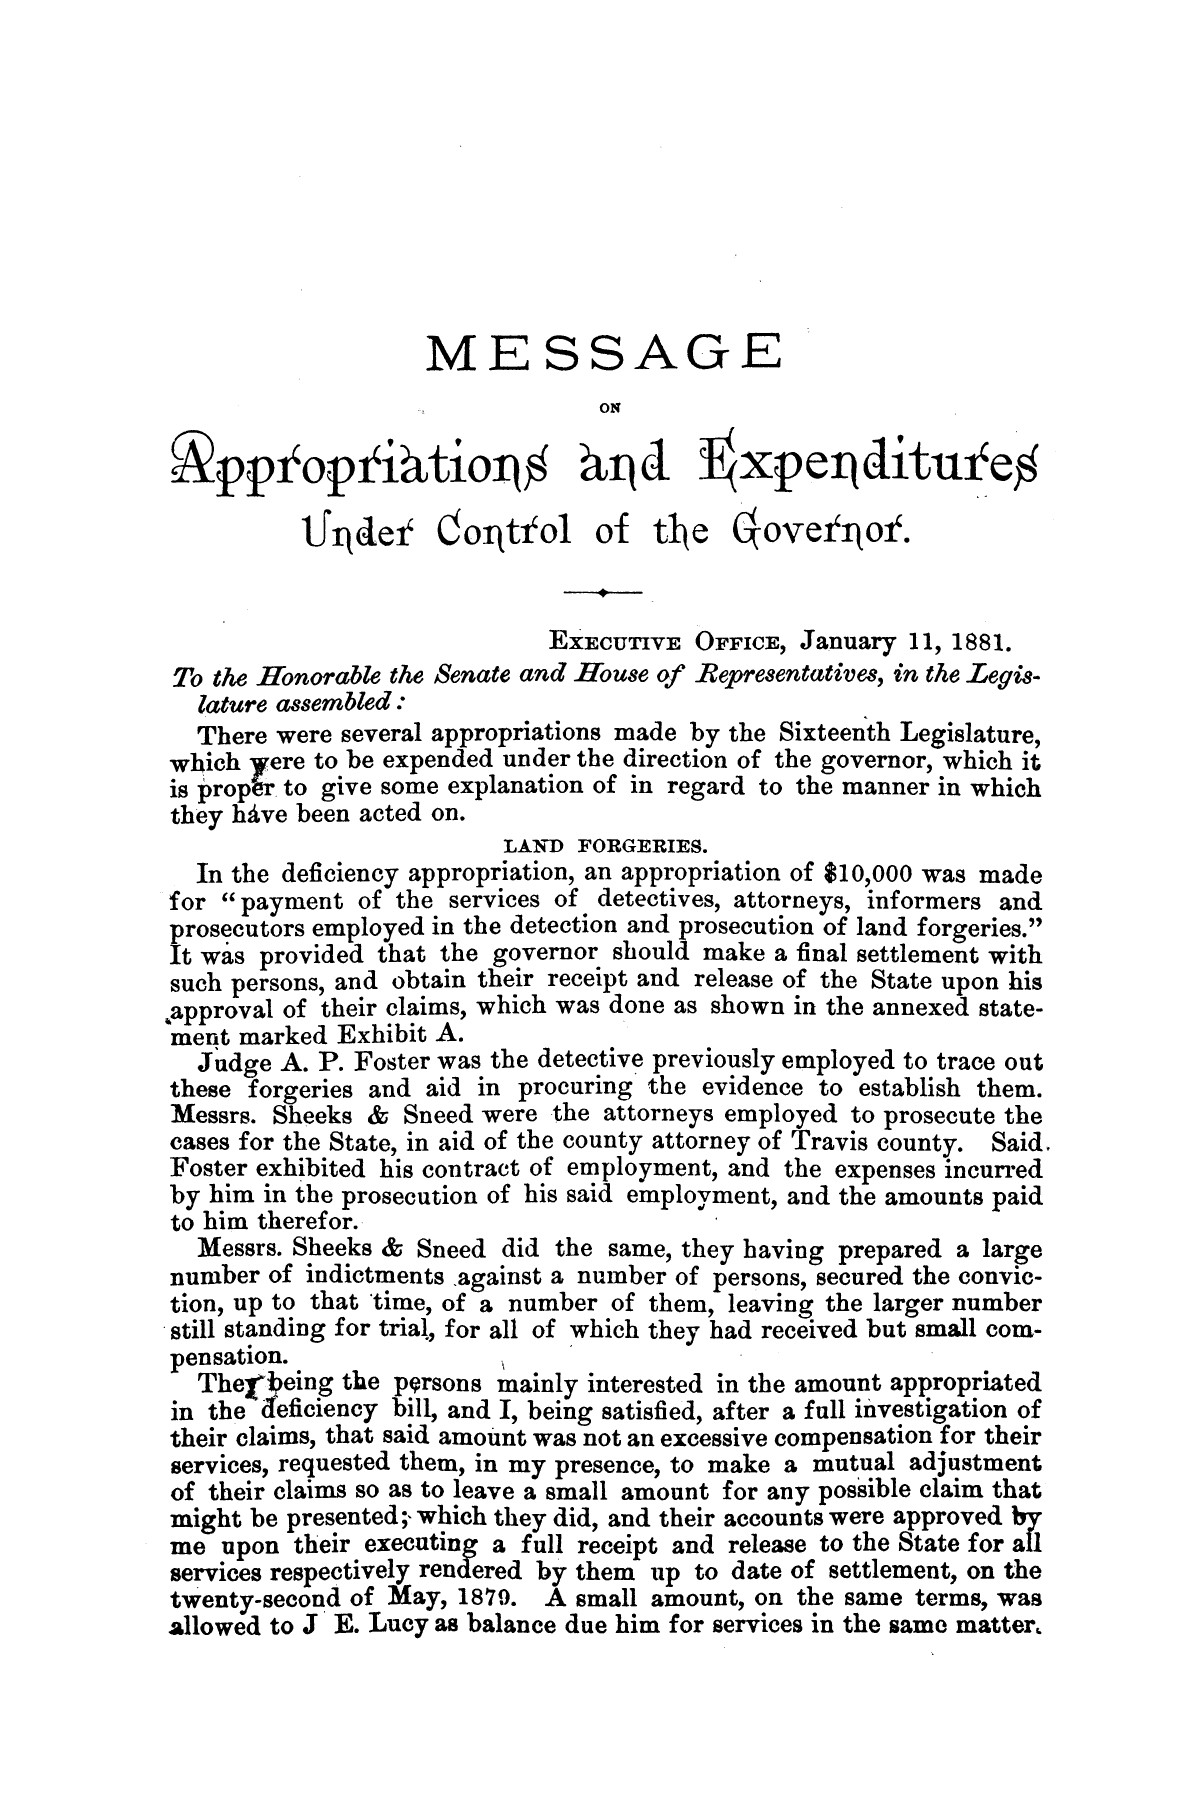 Message of Gov. O. M. Roberts on appropriations and expenditures under the control of the governor to the seventeenth legislature of the state of of Texas, convened at the city of Austin, in regular session, January 11, 1881.                                                                                                      [Sequence #]: 3 of 23